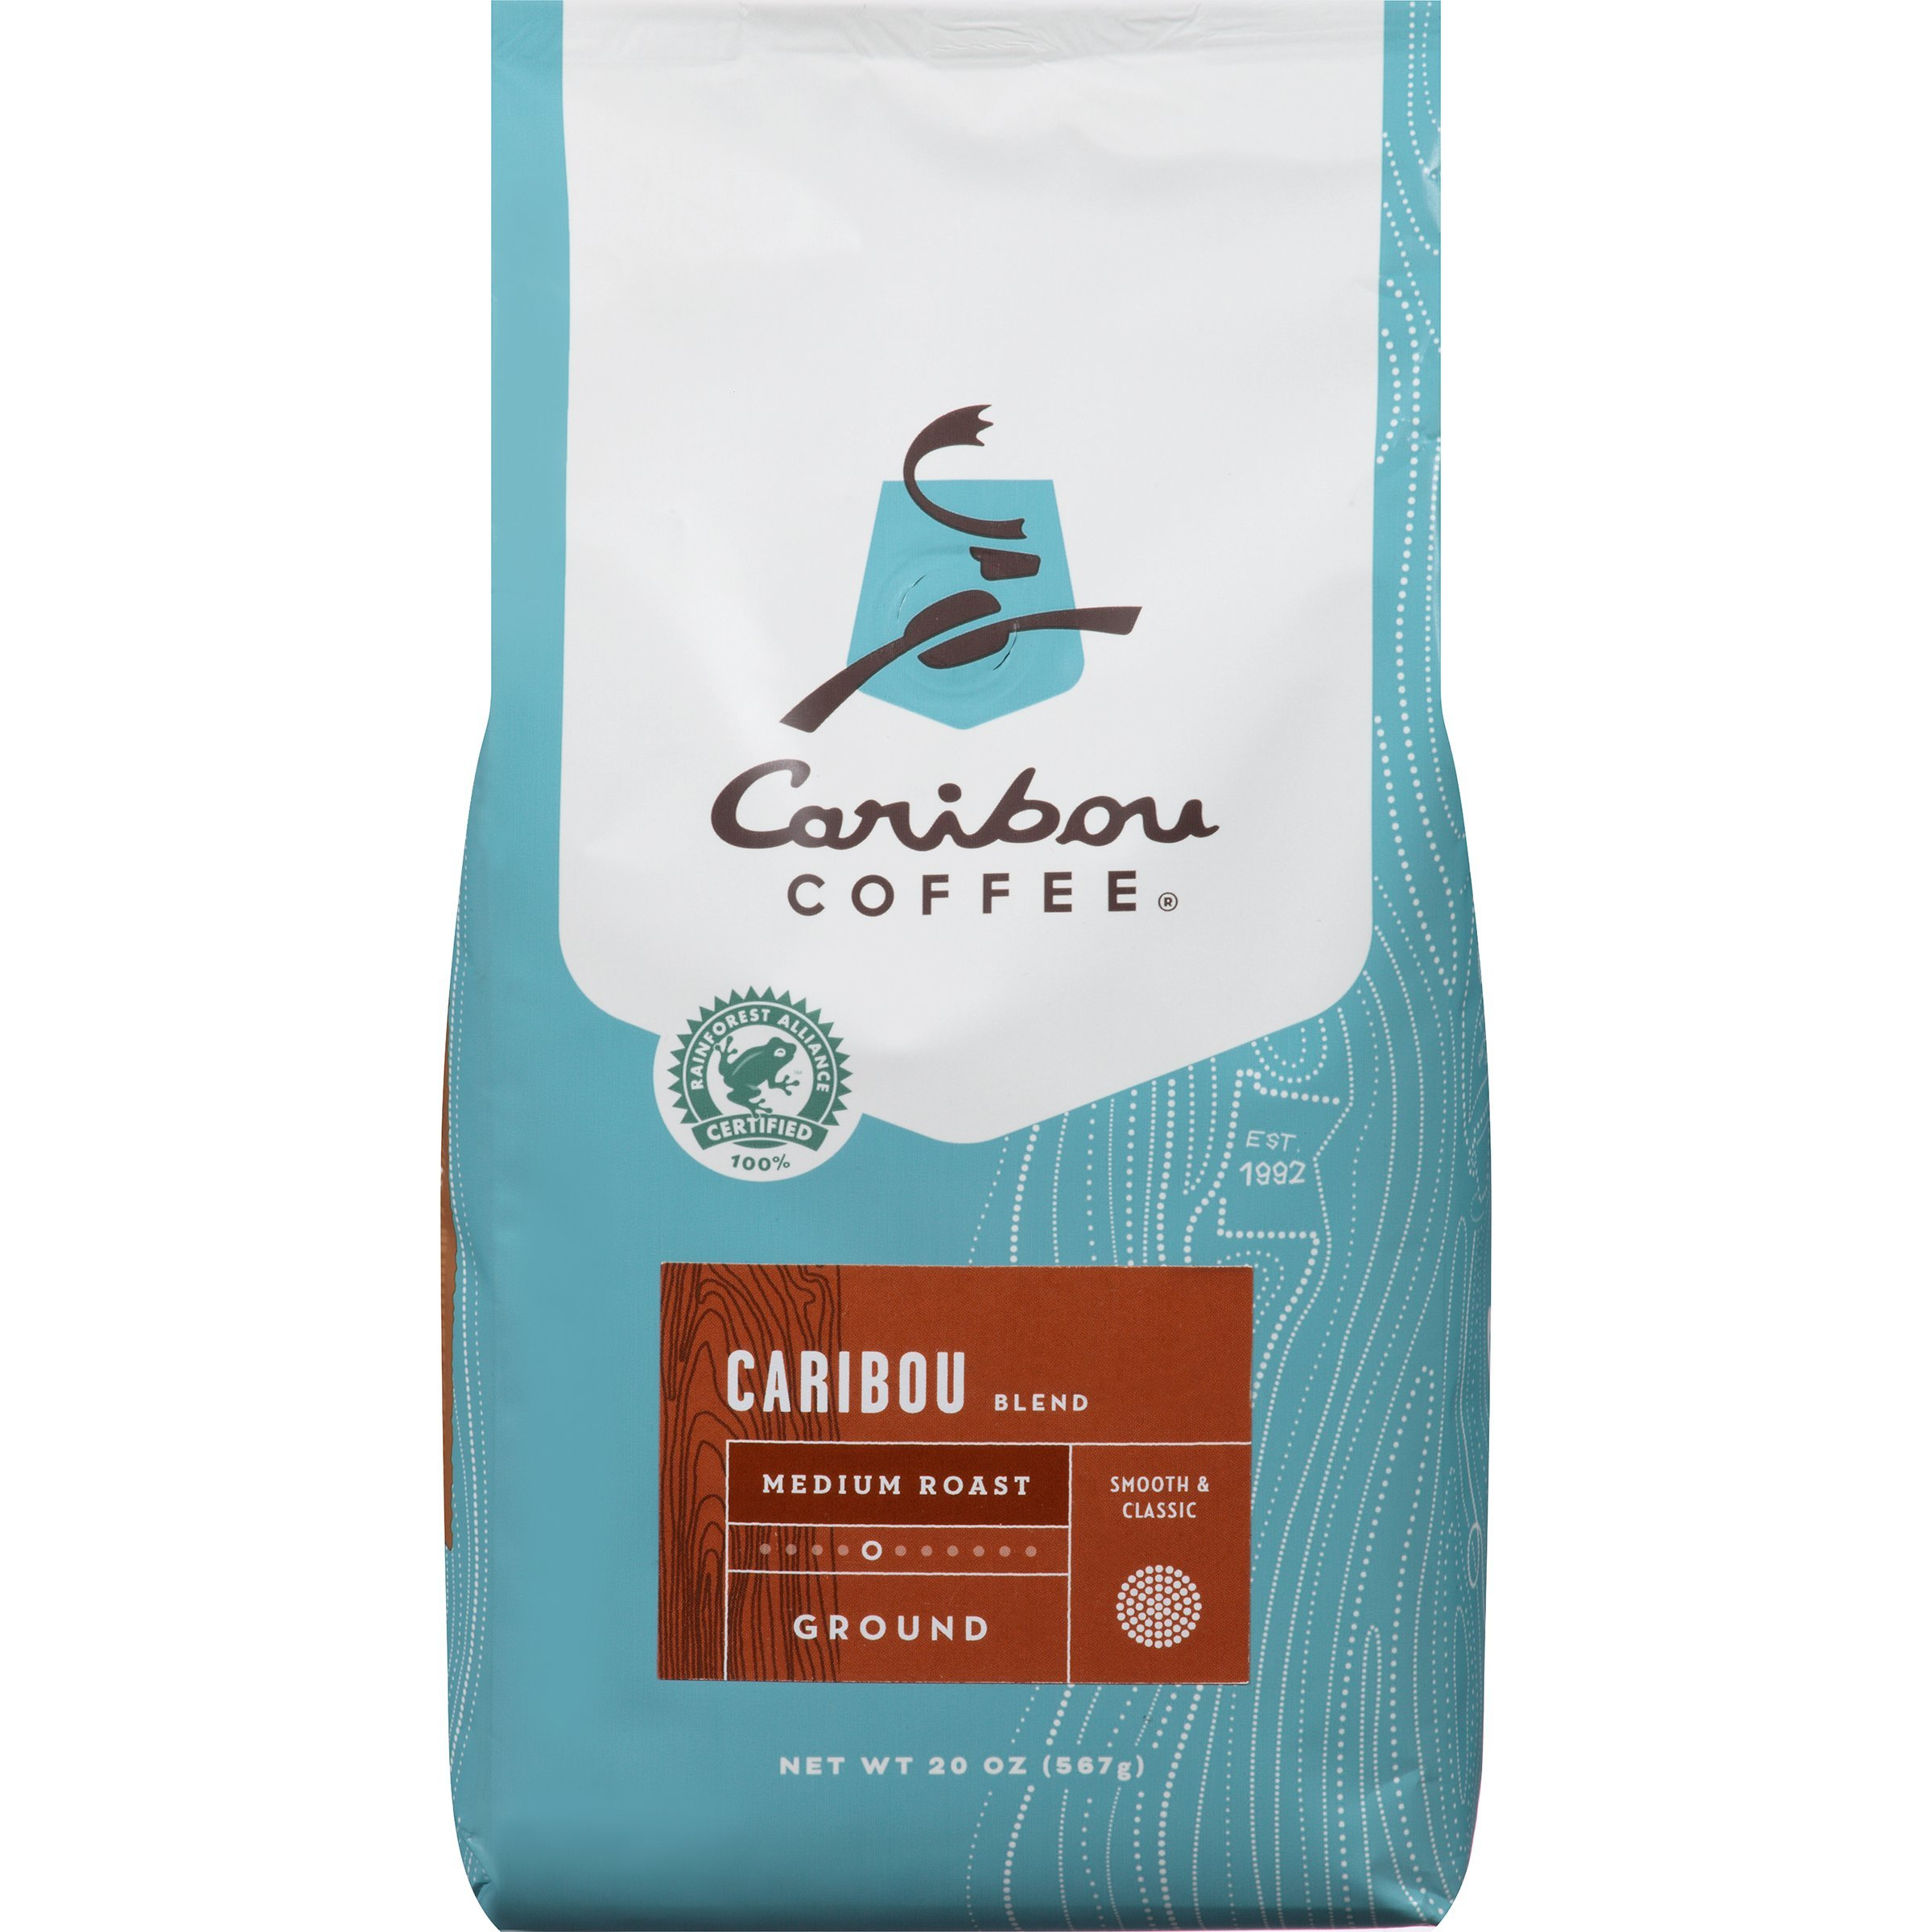 Caribou Coffee, Caribou Blend, Ground, 20 oz. bag, Smooth & Balanced Medium Roast Coffee Blend from the Americas & Indonesia, with A Rich, Syrupy Body & Clean Finish; Sustainable Sourcing